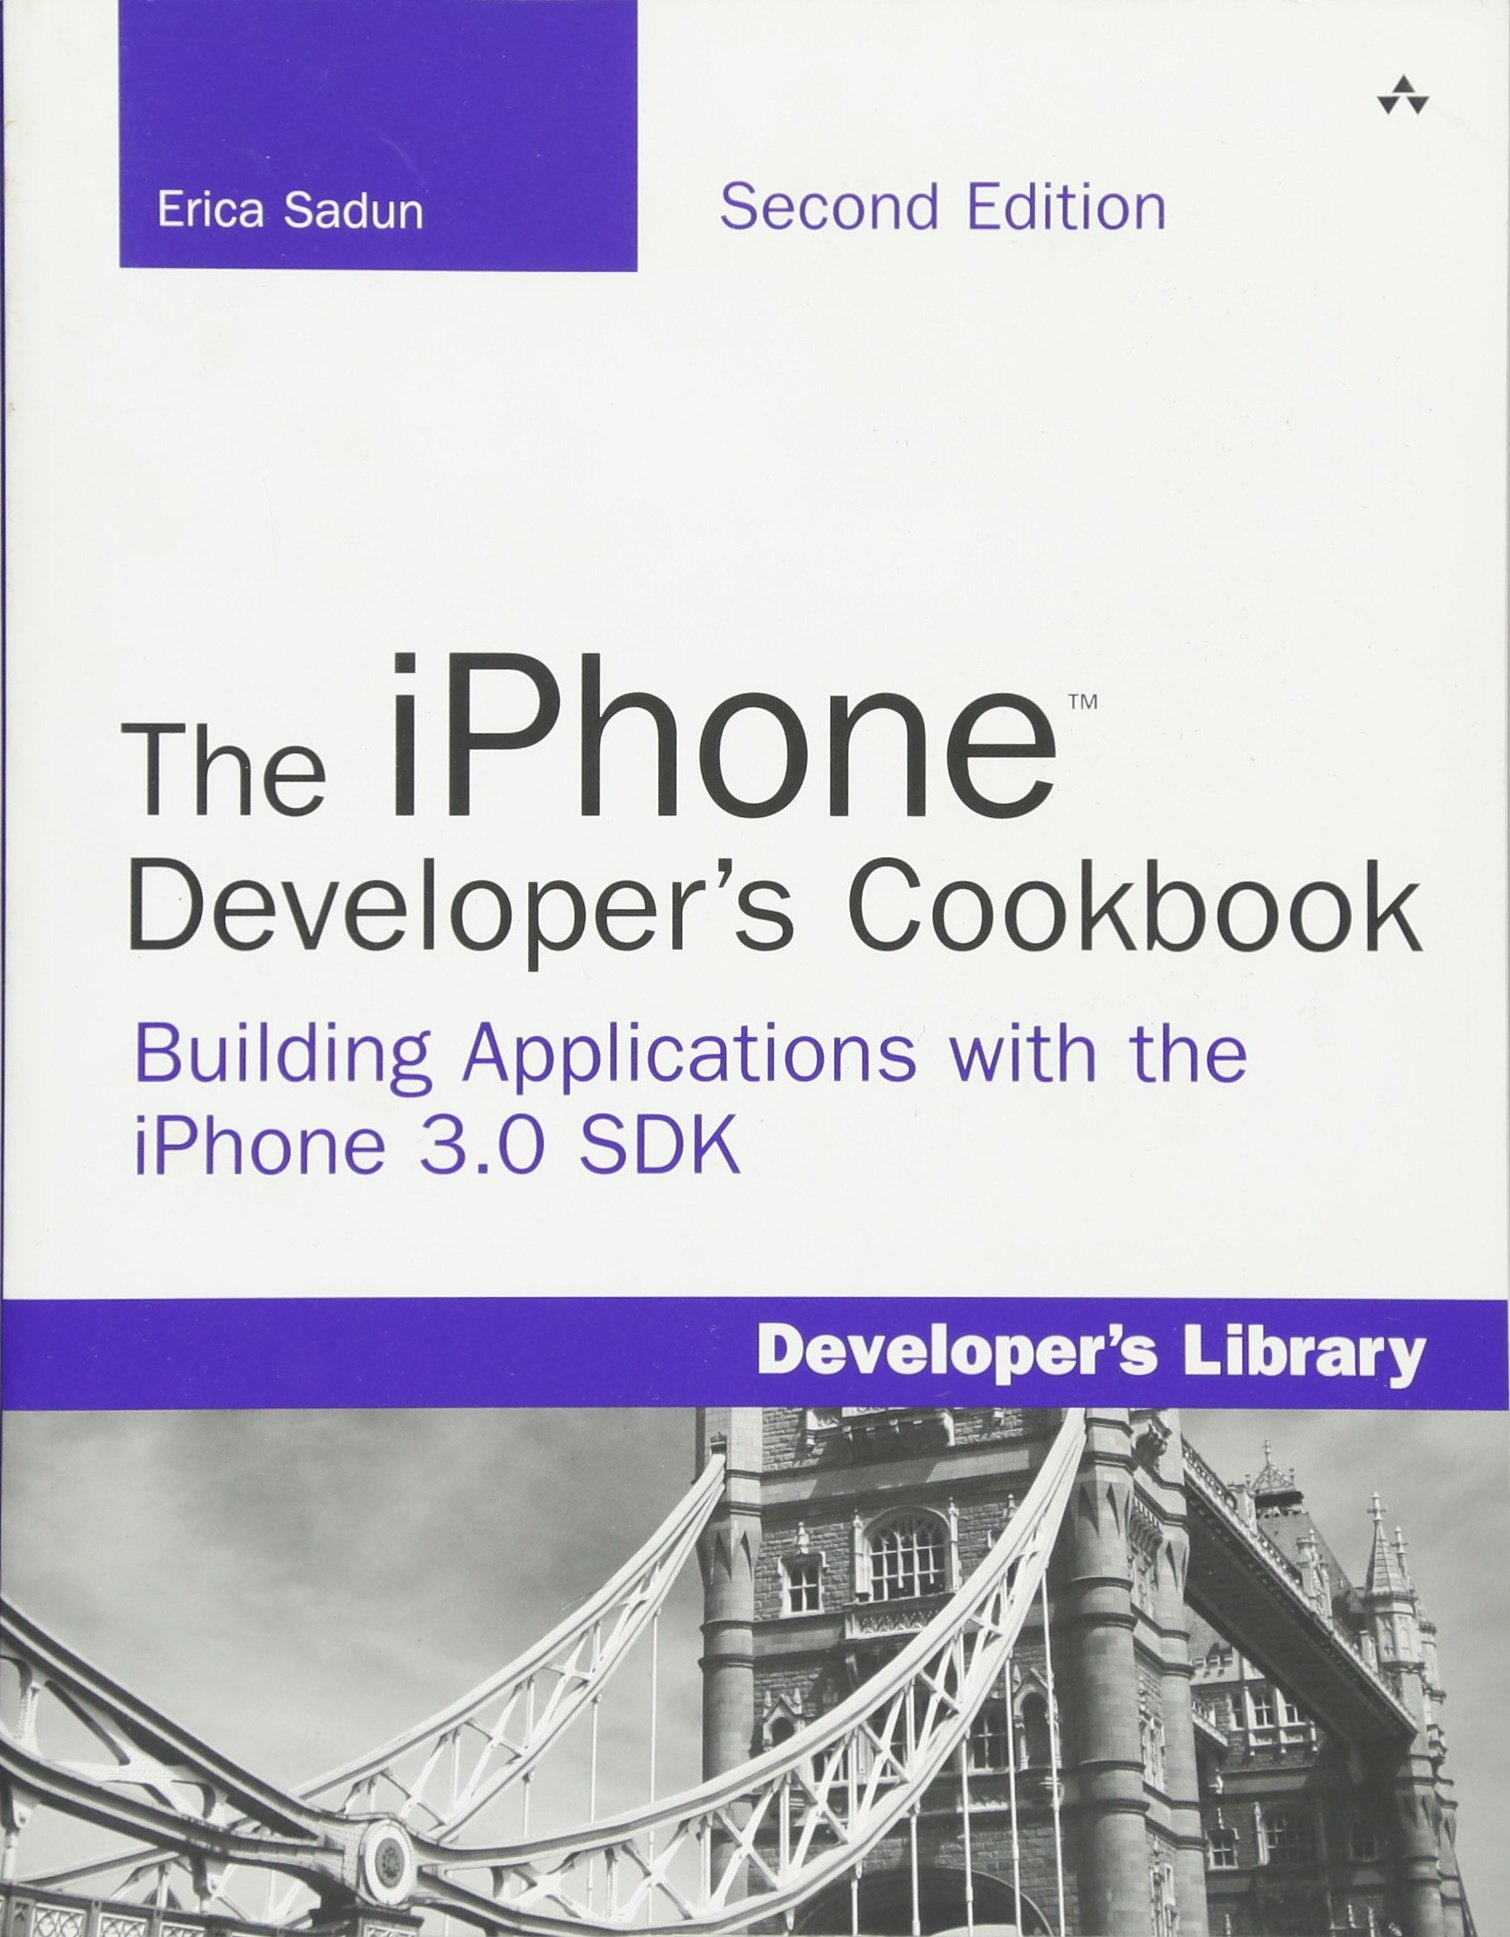 Image OfThe IPhone Developer's Cookbook (Developer's Library)